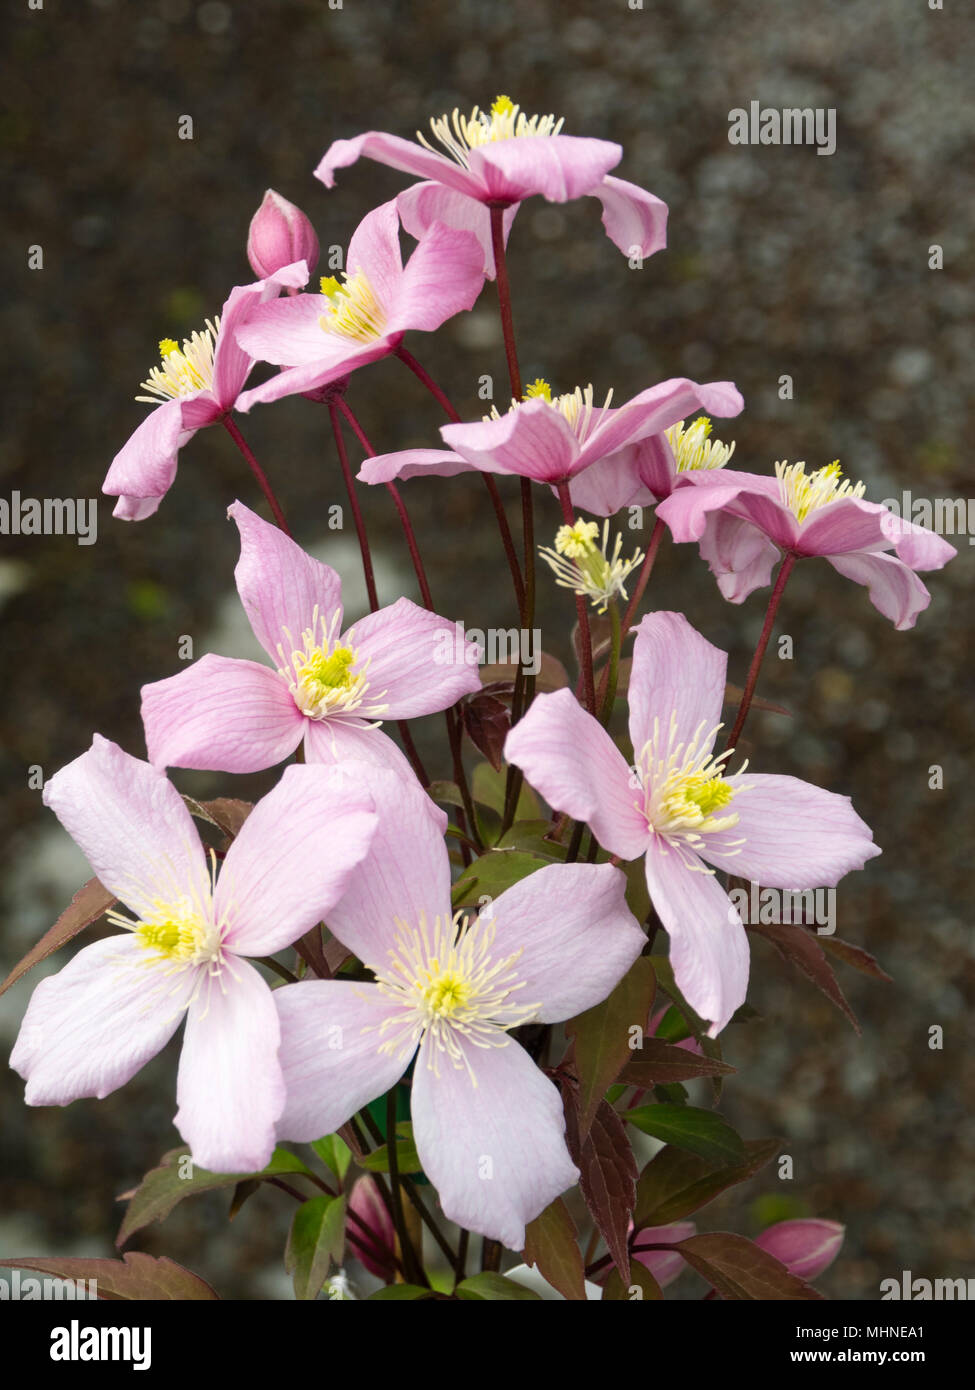 Pink Flowers Of The Deciduous Late Spring Flowering Climber